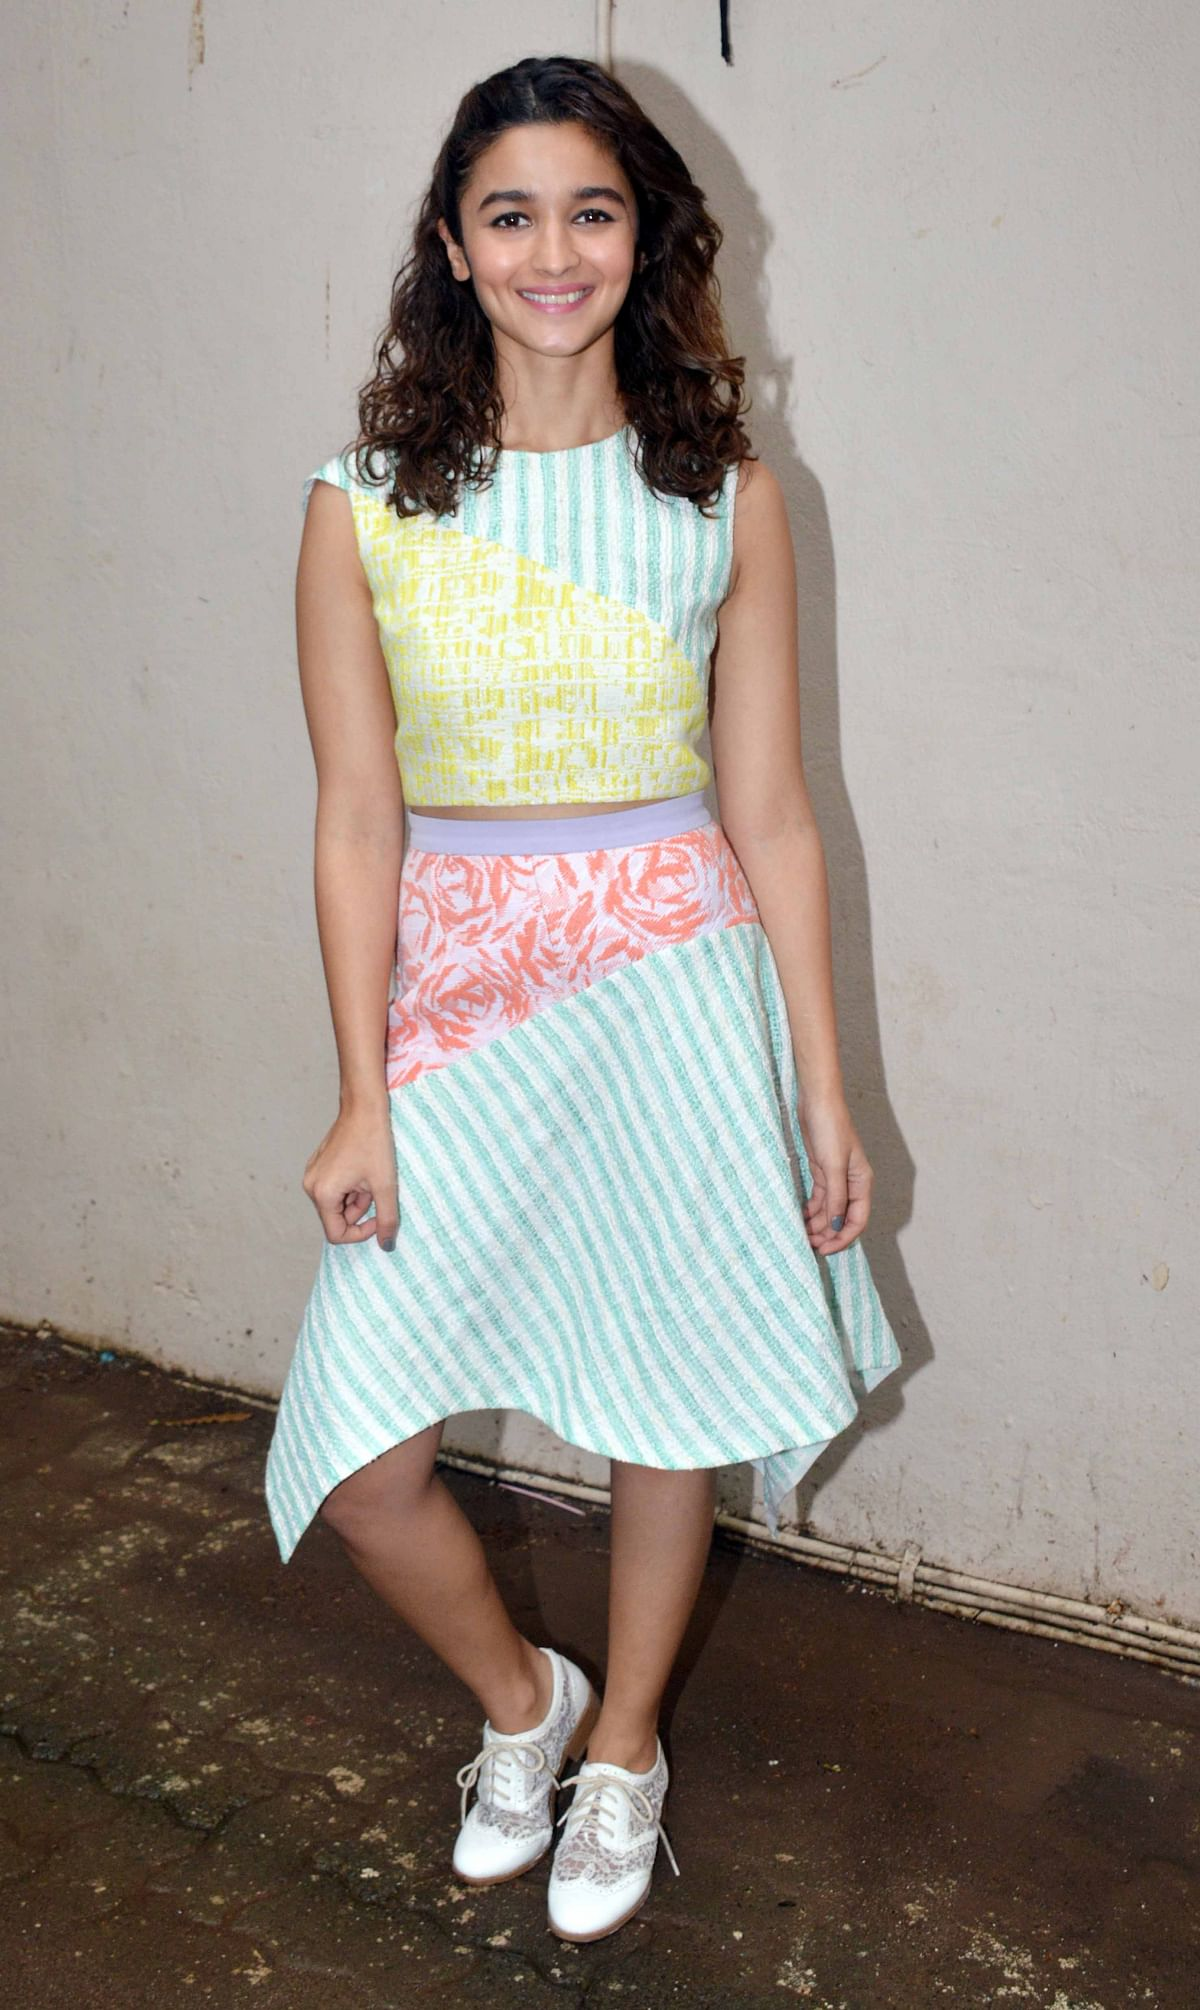 Alia is all about flirty, fun fashion in this crop top and asymmetrical skirt (Photo: Yogen Shah)